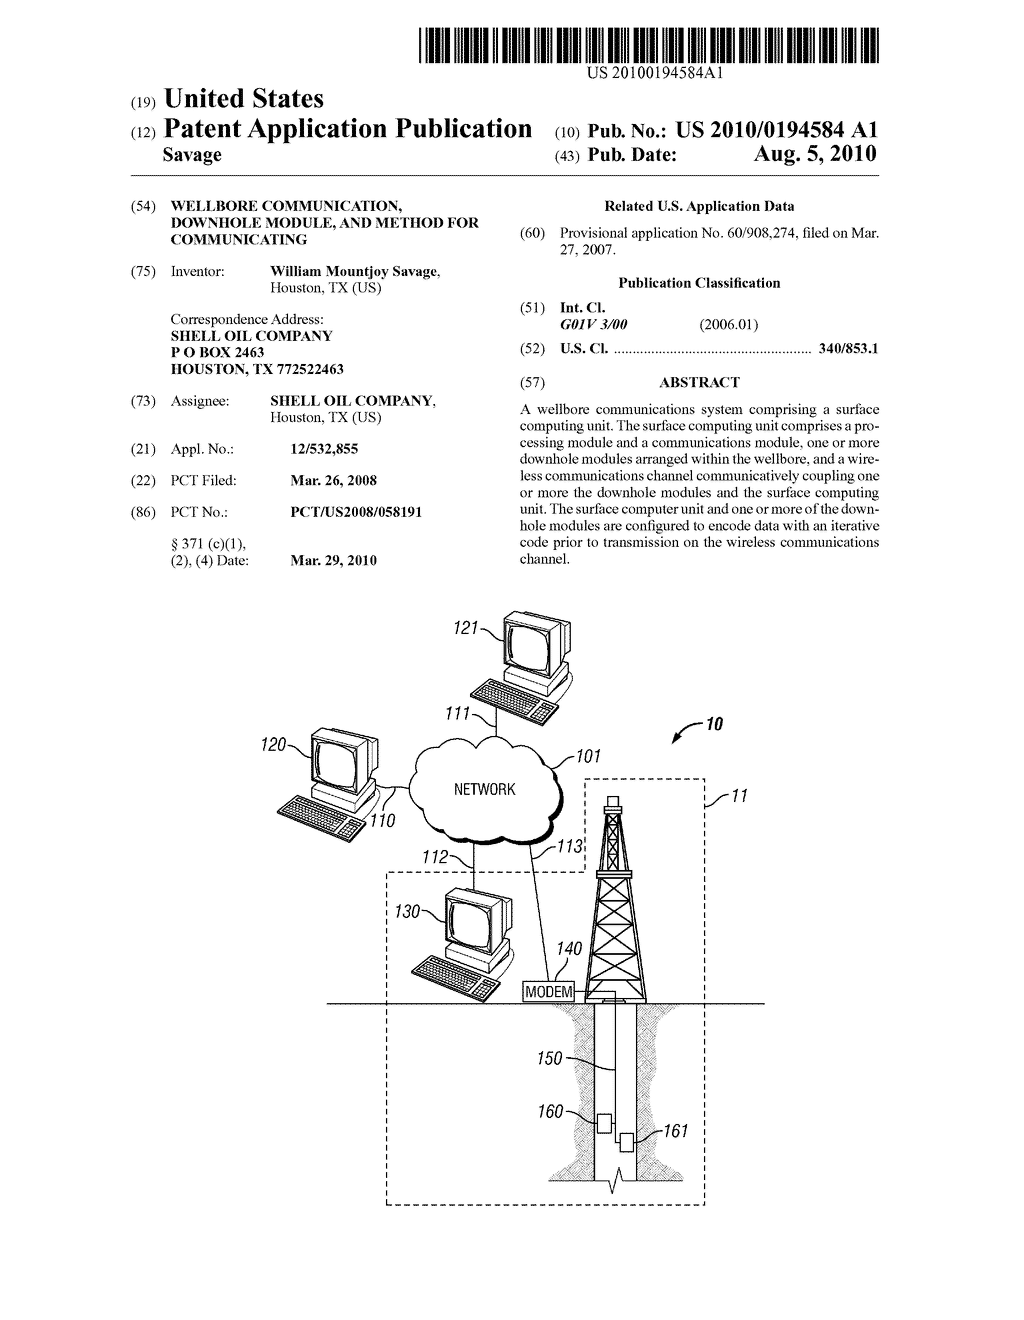 WELLBORE COMMUNICATION, DOWNHOLE MODULE, AND METHOD FOR COMMUNICATING - diagram, schematic, and image 01